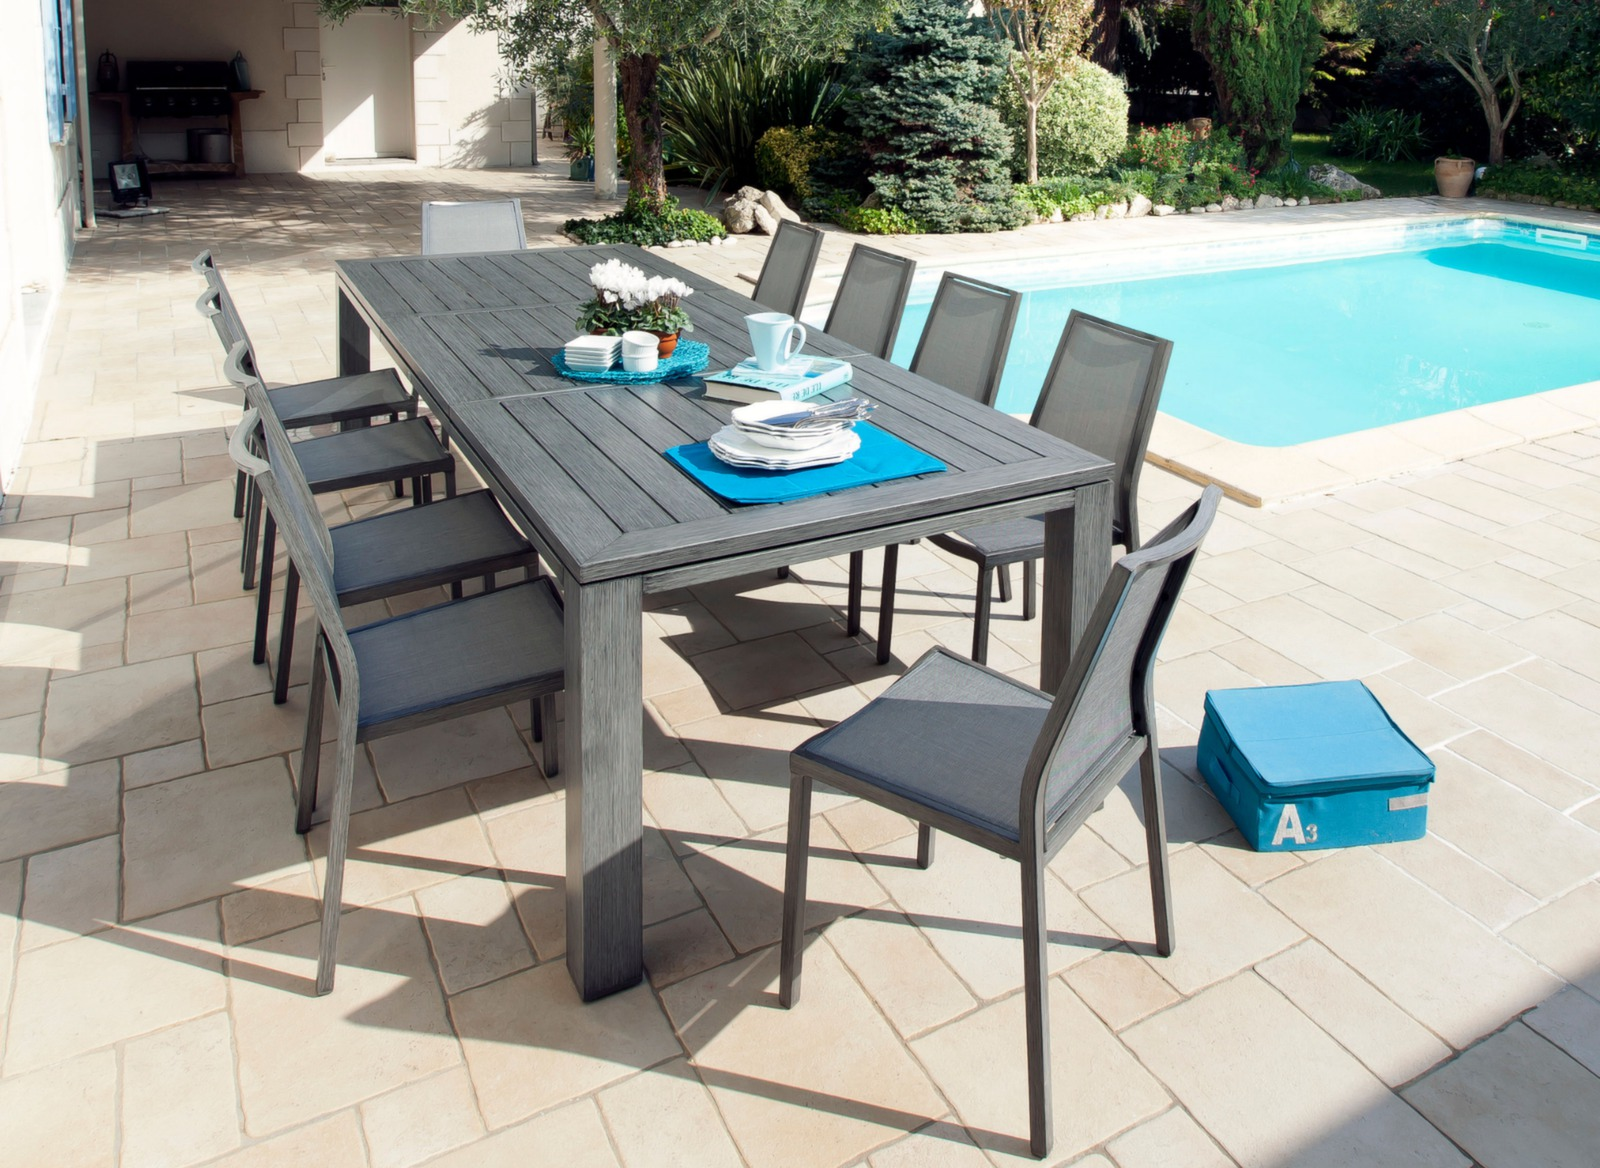 Table de jardin aluminium 200 300cm latino oc o for Salon de jardin aluminium 10 personnes